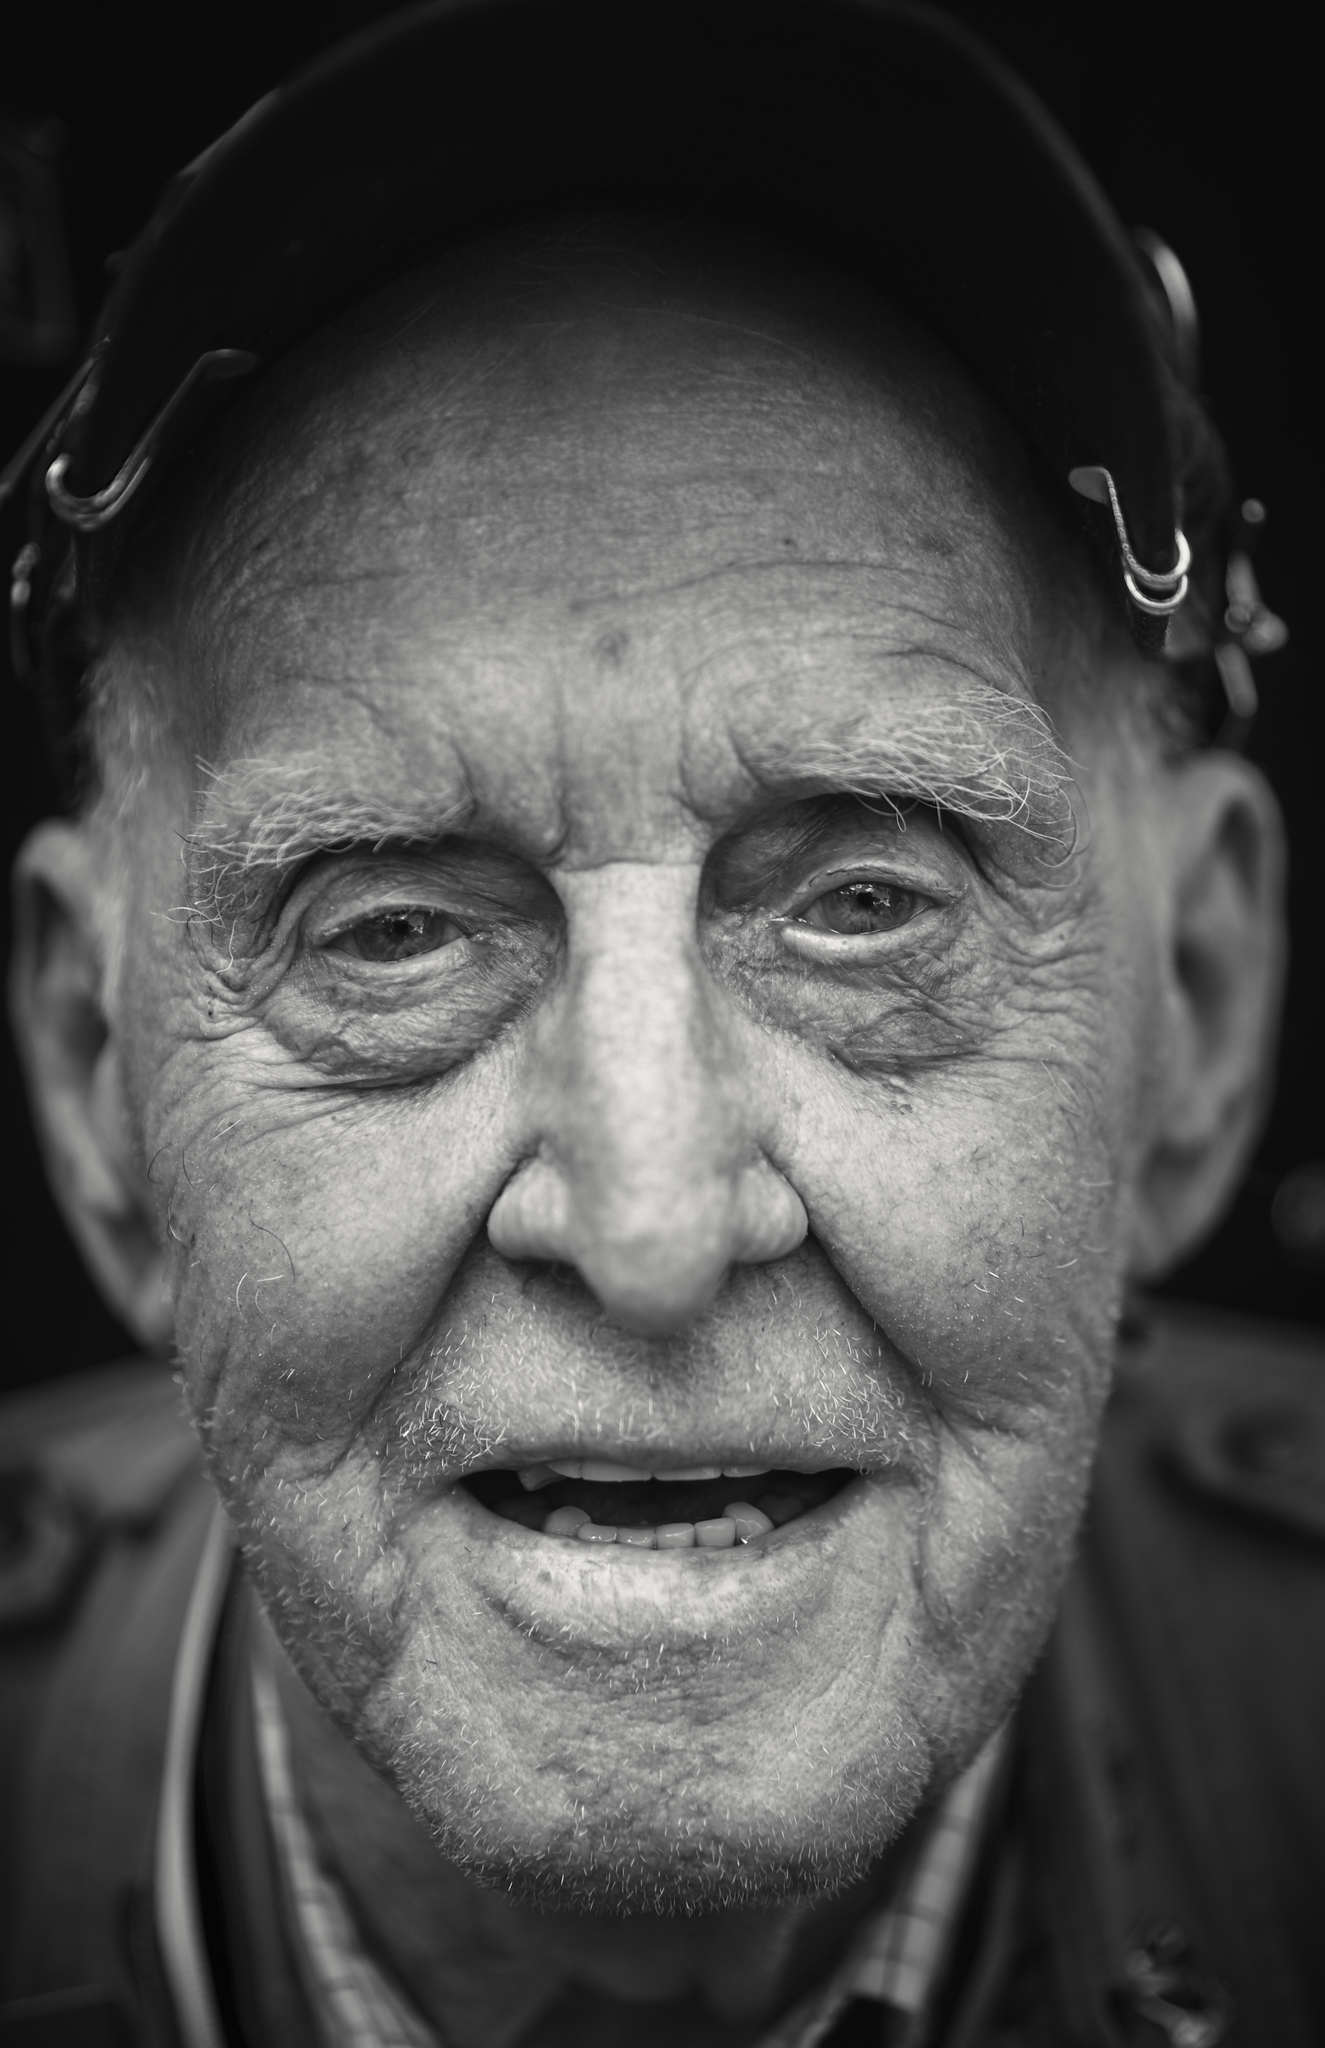 D-DAY VETERANS, FRANCE - JUNE 6: Ernie Lamson (97 yrs old), from Minnesota, photographed at the Amer